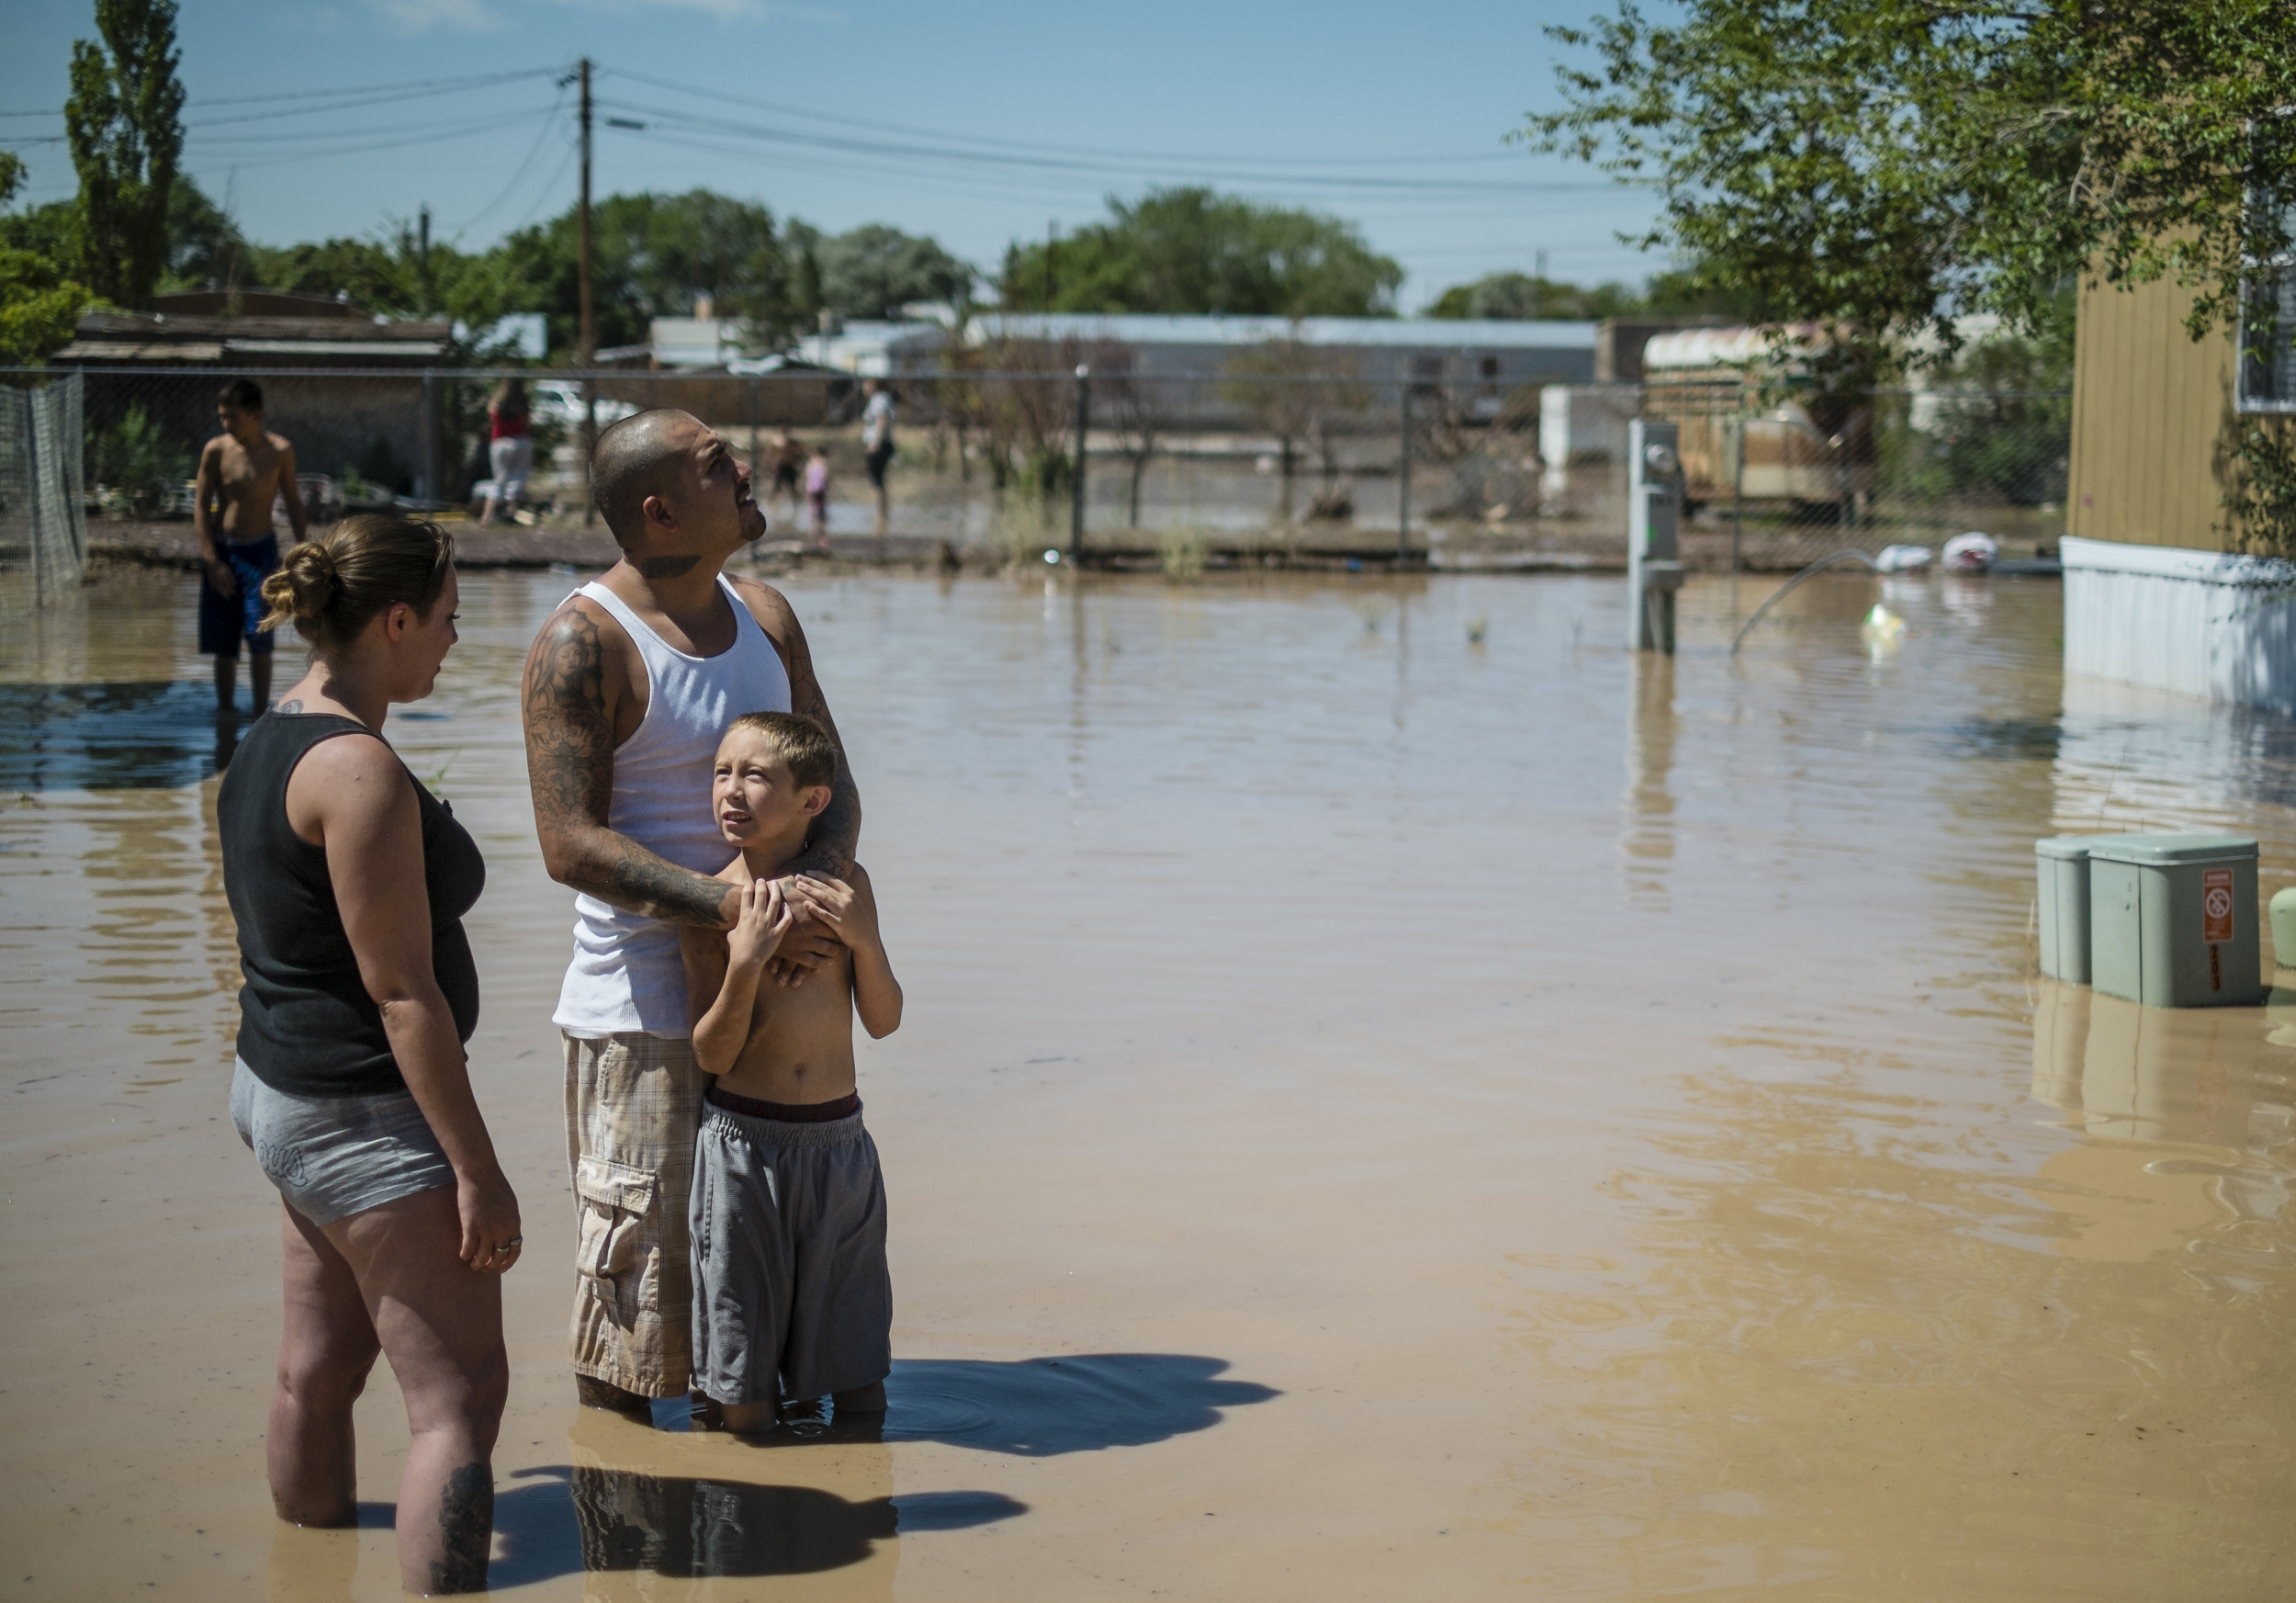 Residents of Bernalillo, New Mexico stand outside their home after being flooded by record rains.